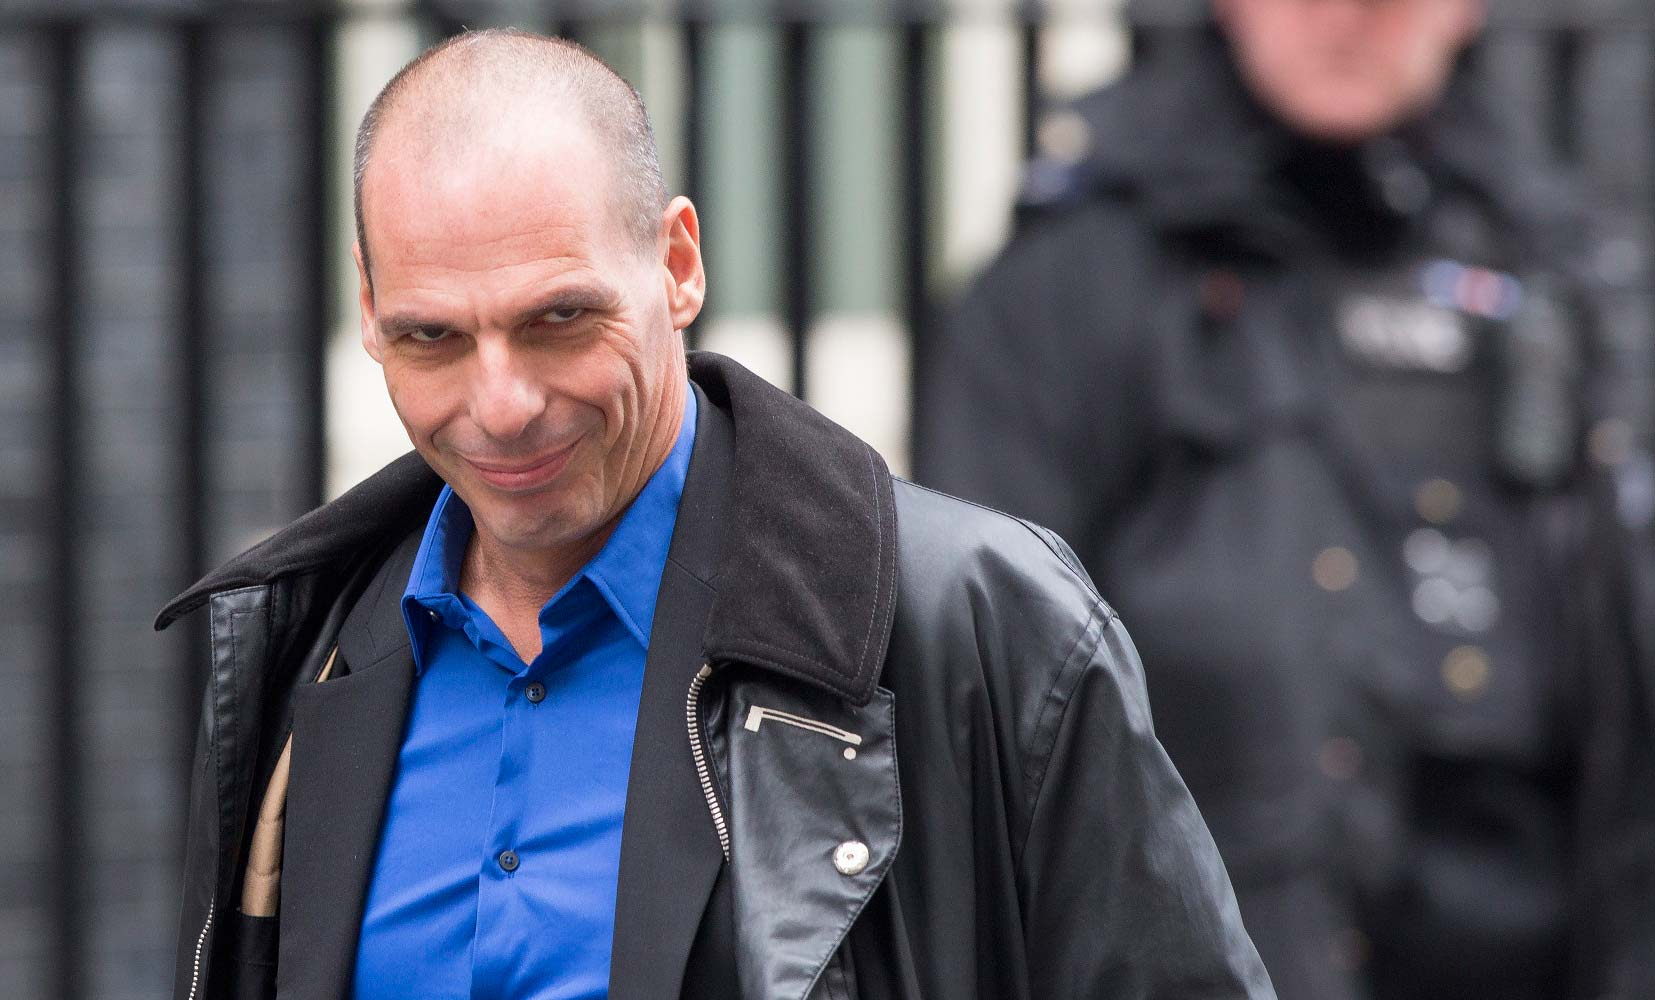 Summer Motorcycle Jacket >> Yanis Varoufakis's Greek Tragedy - Open Source with Christopher Lydon